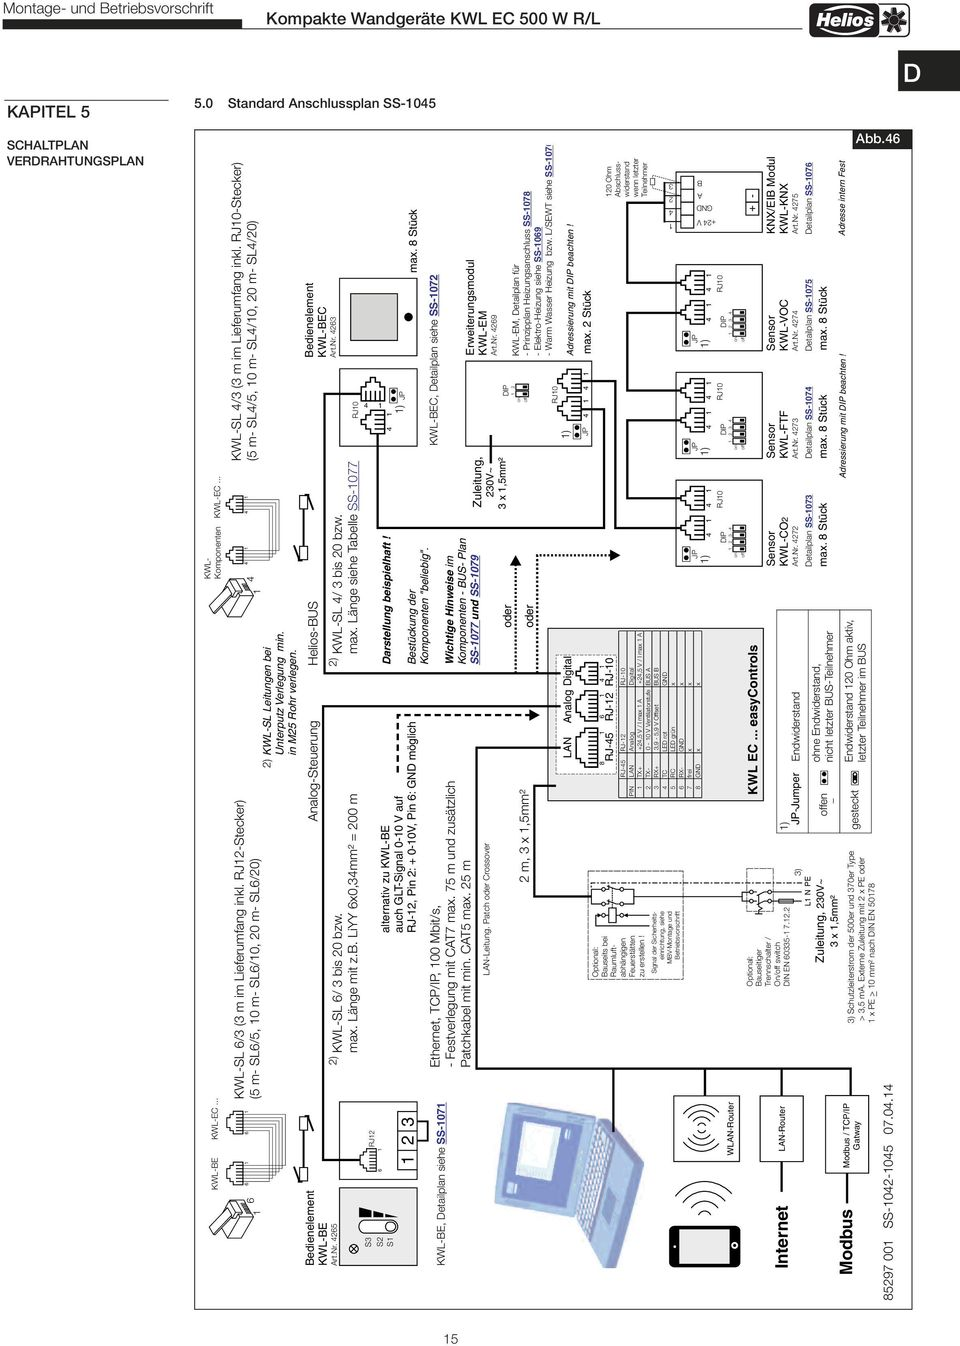 50 And 70 Atv Quad Wiring Diagram moreover Rj11 Connection Diagram in addition Category6 together with Rj11 Cat5 Cable Wiring Diagram in addition Diagram Of Polaris Atv Parts 2005 A05mh50ab Sportsman 500. on cat6 termination diagram